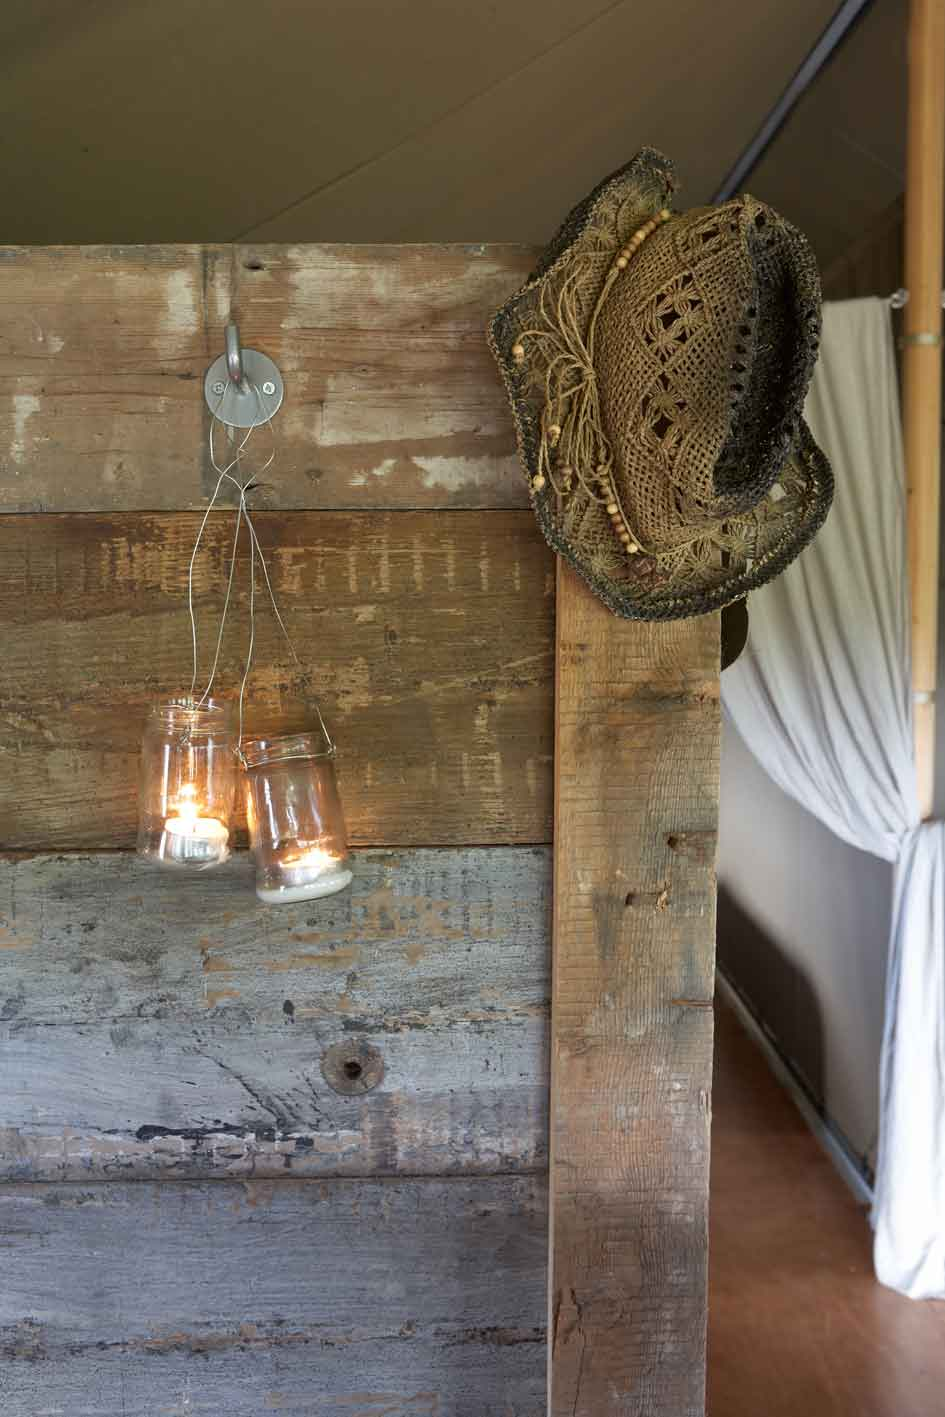 jam jar lanterns and hat hanging on the hooks on the day bed